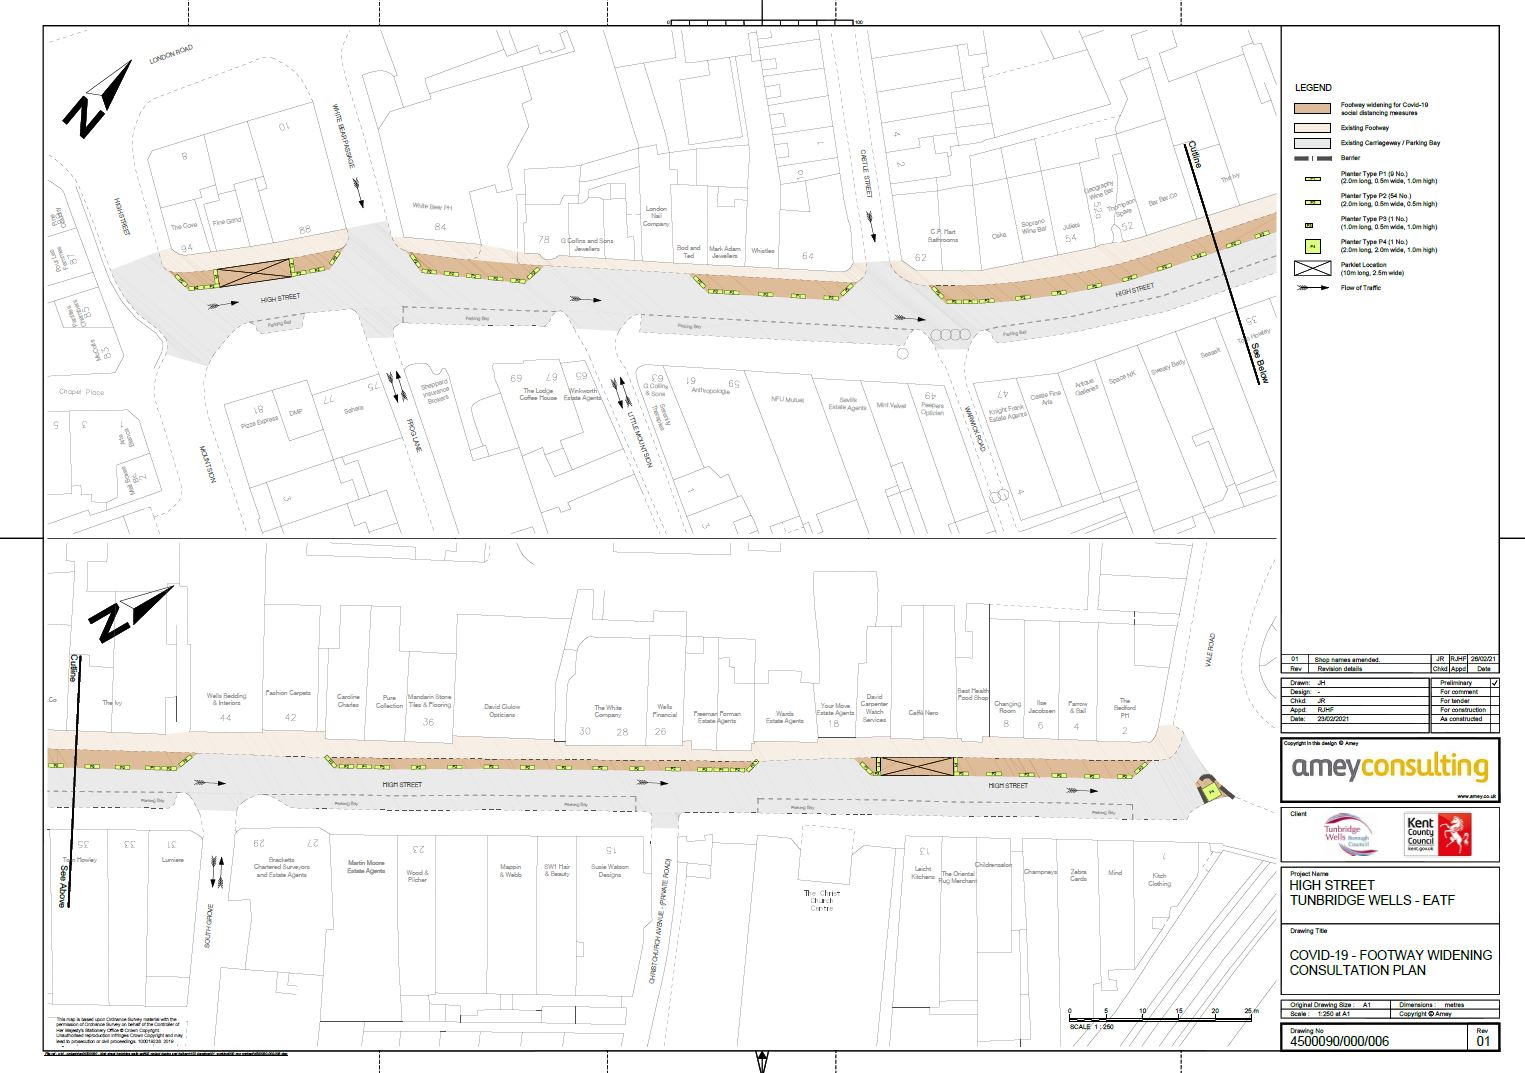 Image showing the High Street consultation plan map for Royal Tunbridge Wells